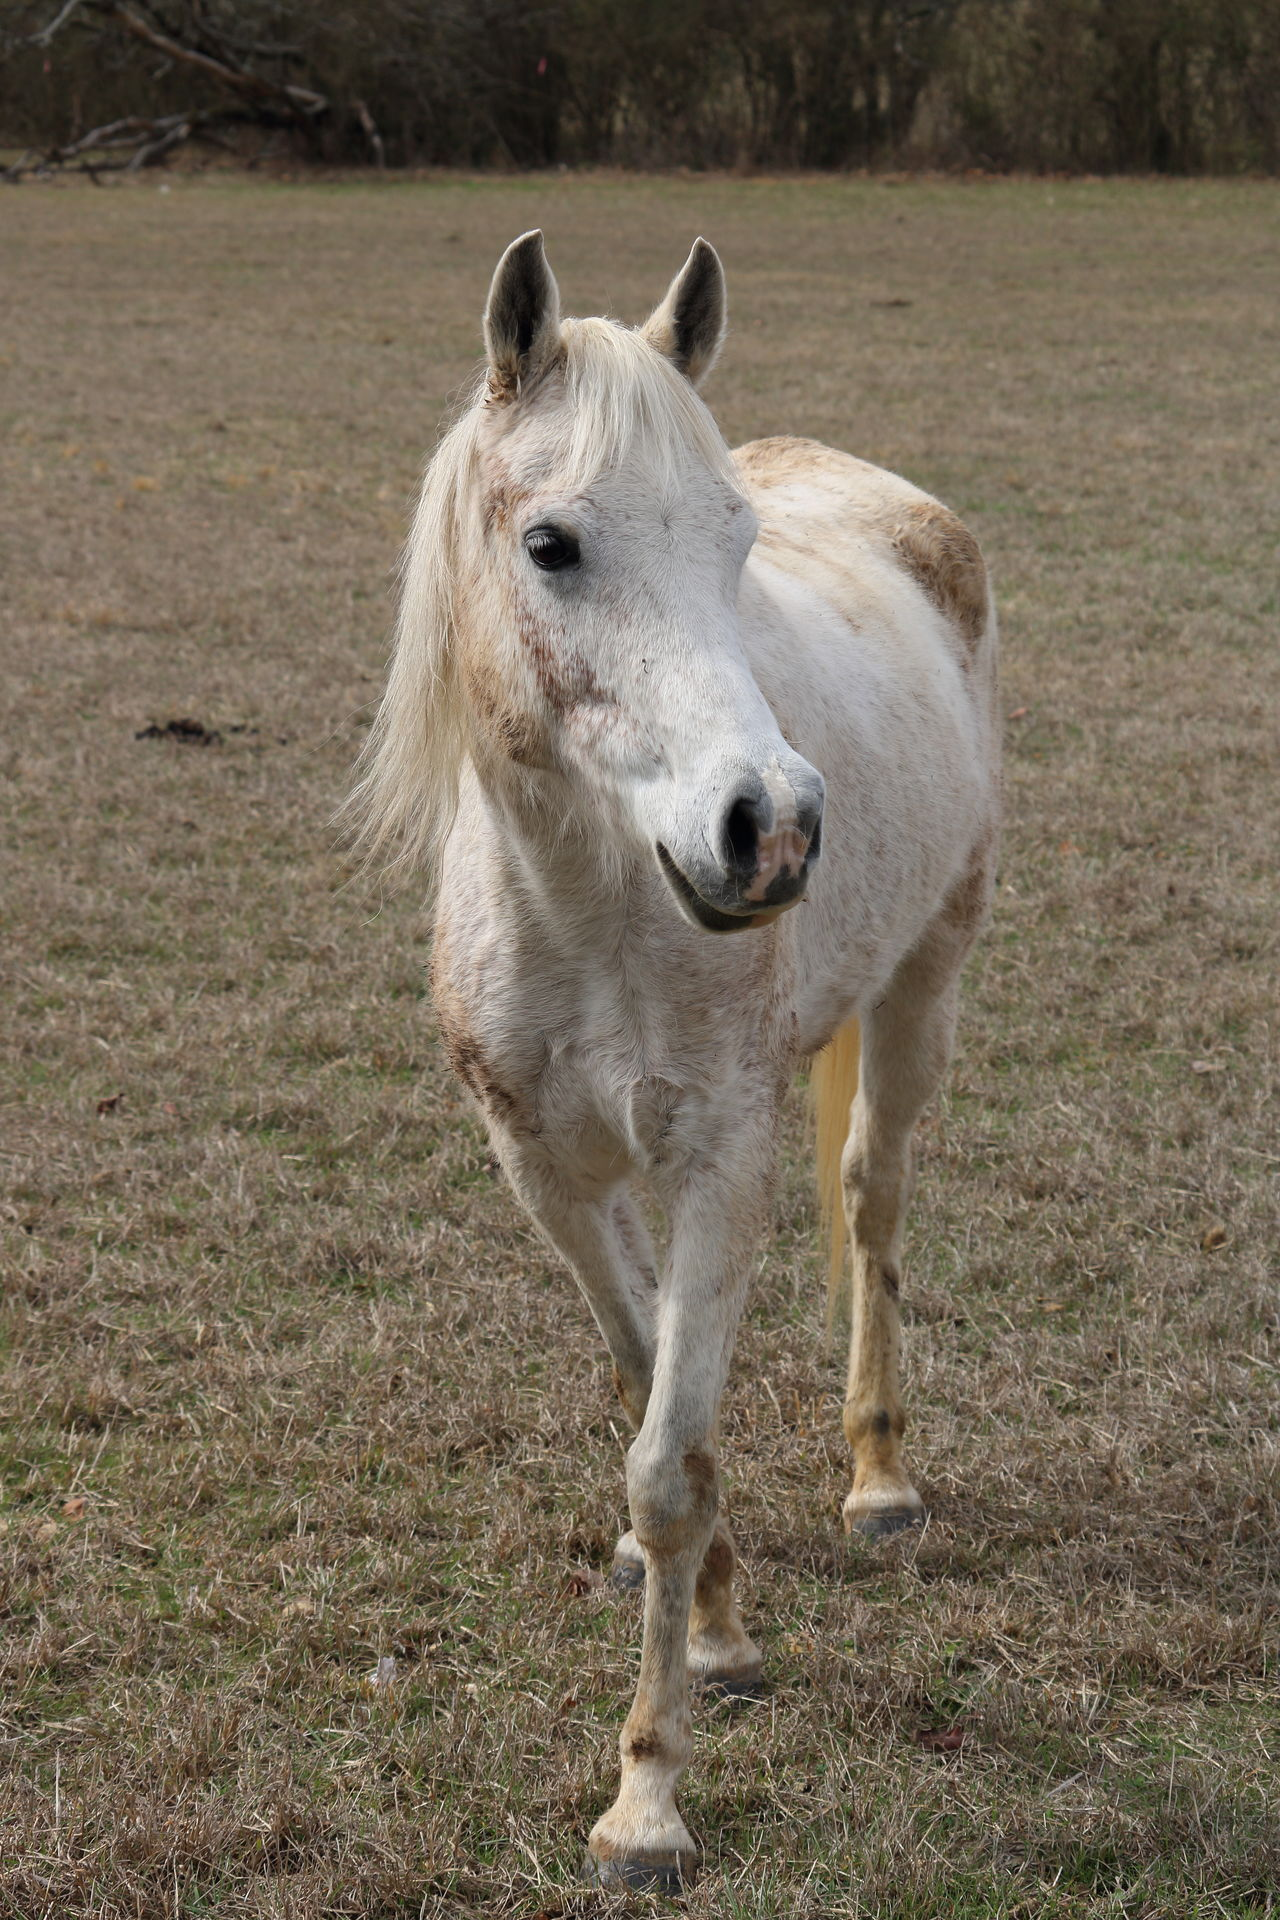 Dirtyhorse Animal Themes Field Nature Mammal No People One Animal Grass Landscape Outdoors Domestic Animals Day Beauty In Nature Friendly Faces